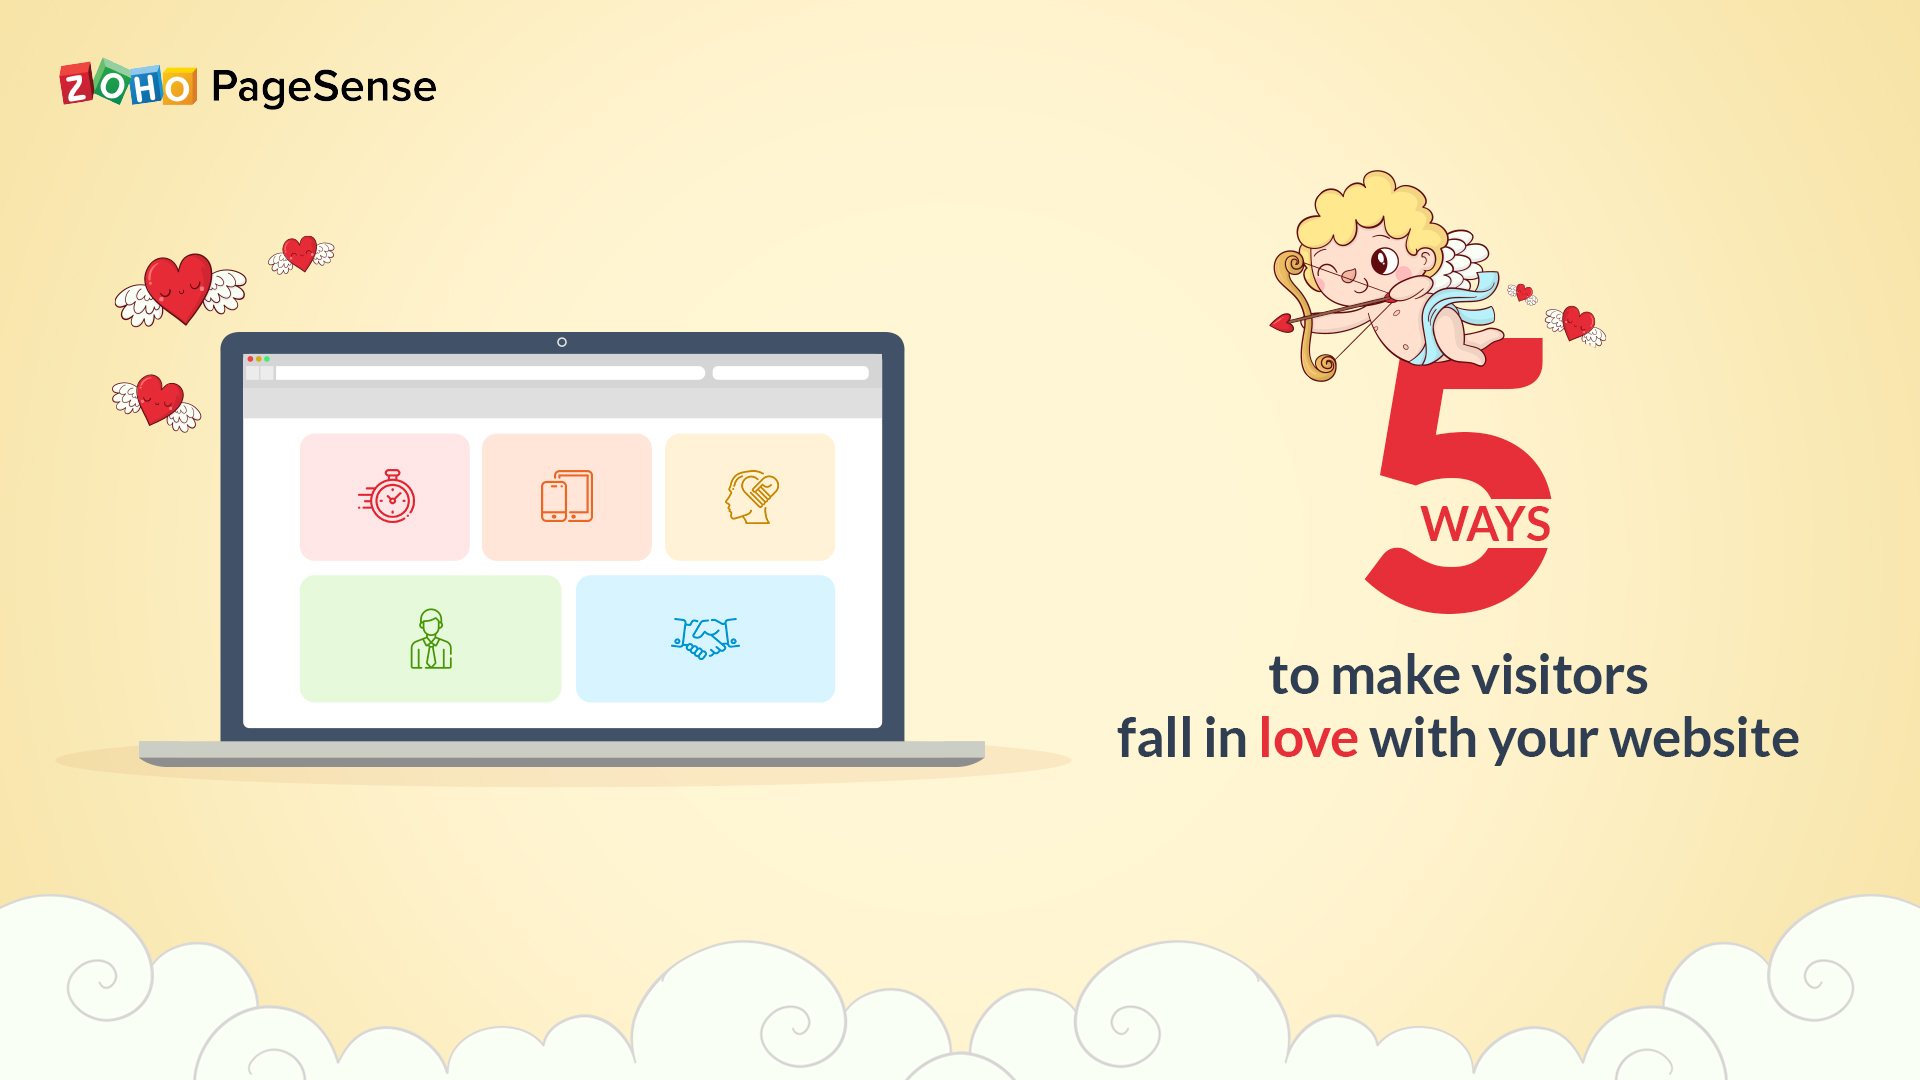 5 Ways to Make Visitors Fall in Love with Your Website